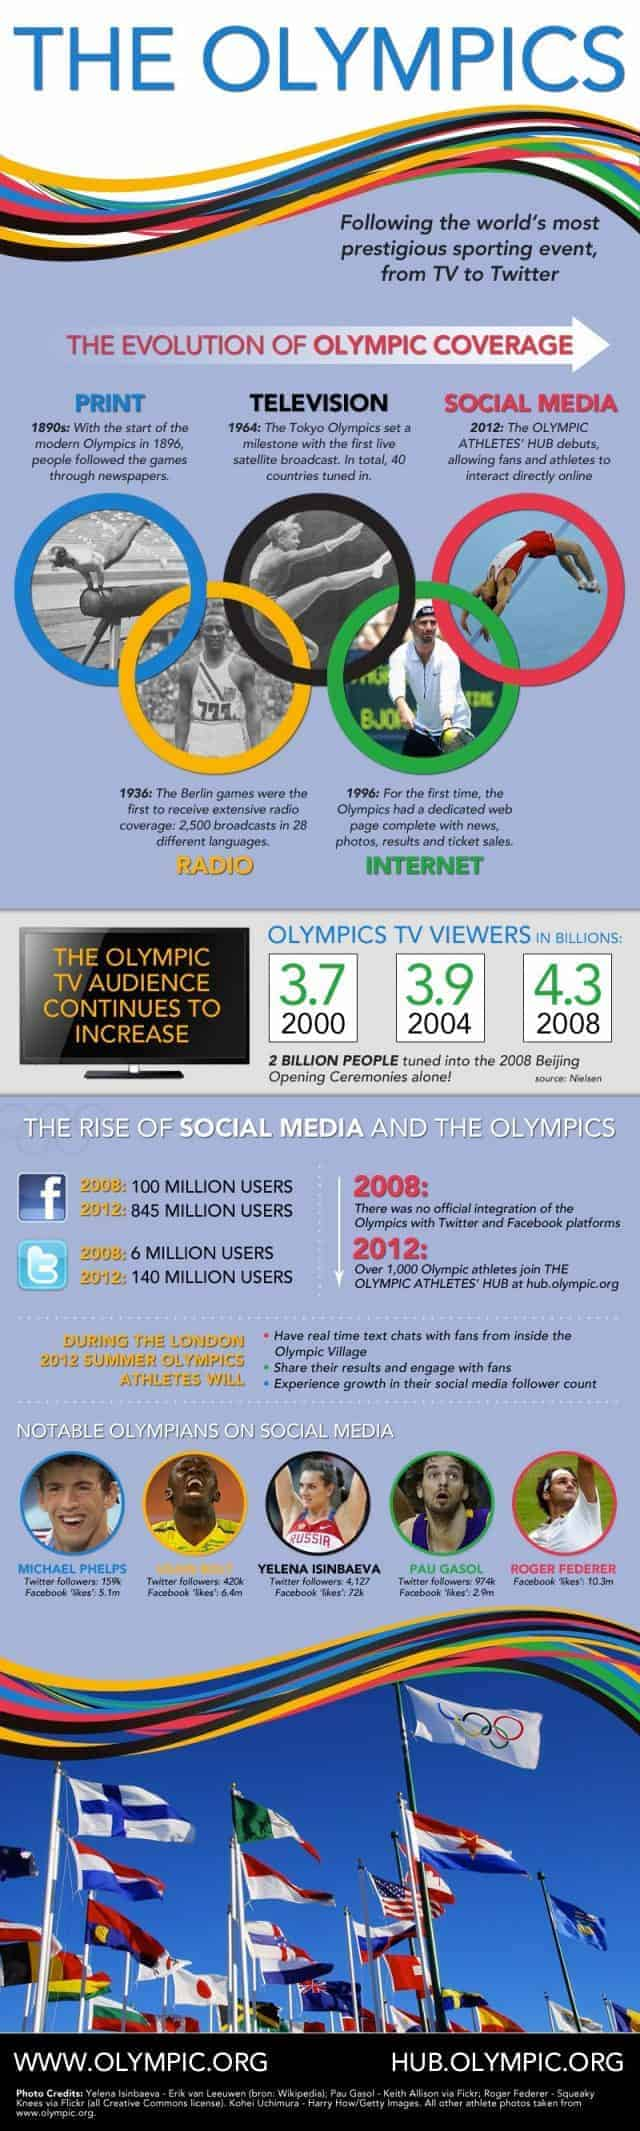 Evolution of Olympic Coverage